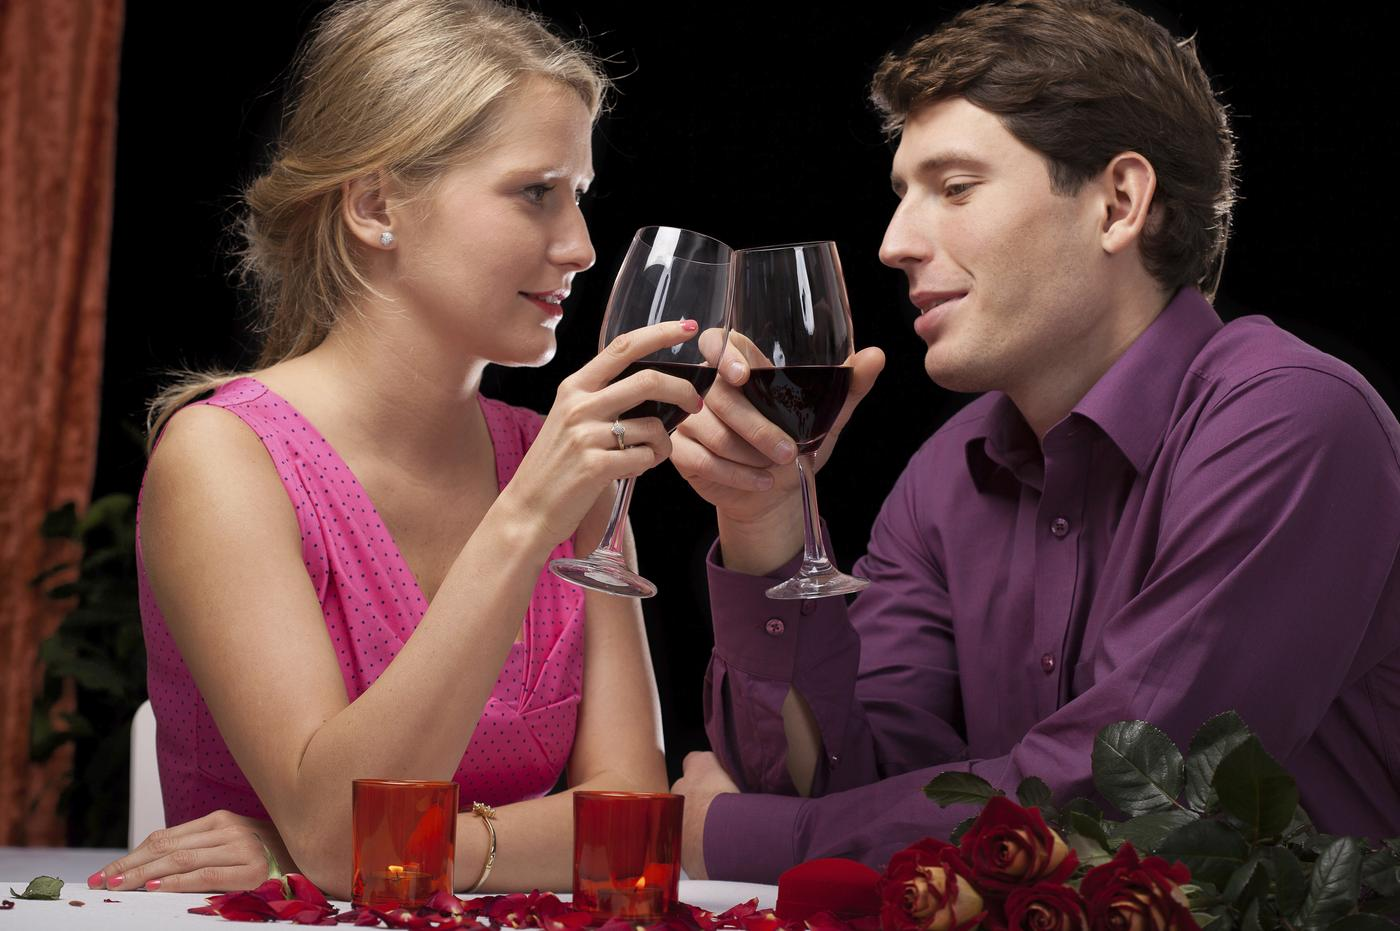 Why women should never go halves on a date